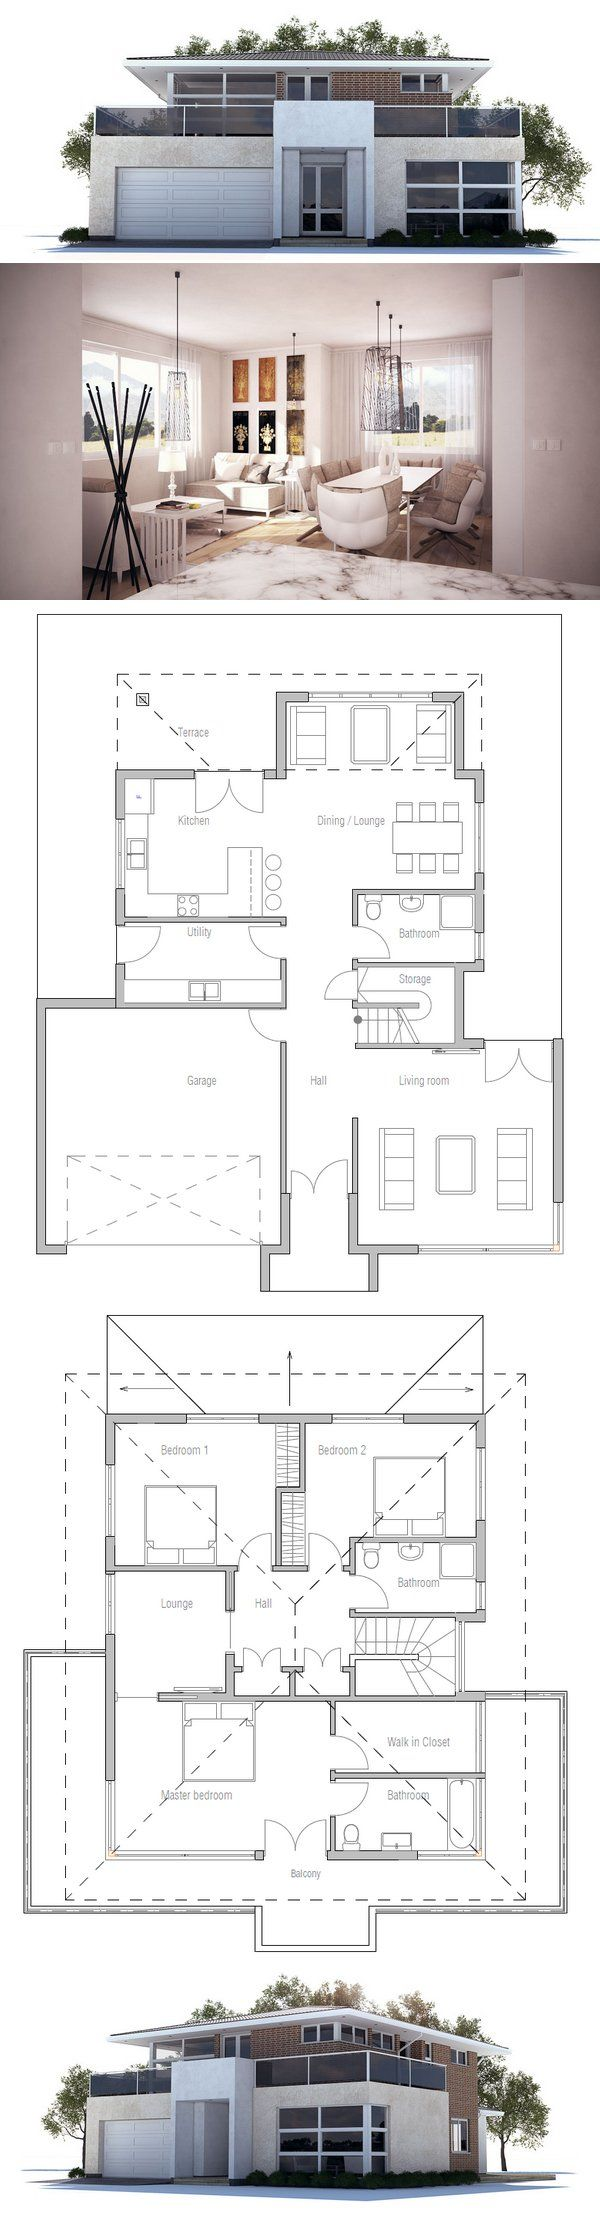 Strange 17 Best Ideas About Modern House Plans On Pinterest Modern Floor Largest Home Design Picture Inspirations Pitcheantrous